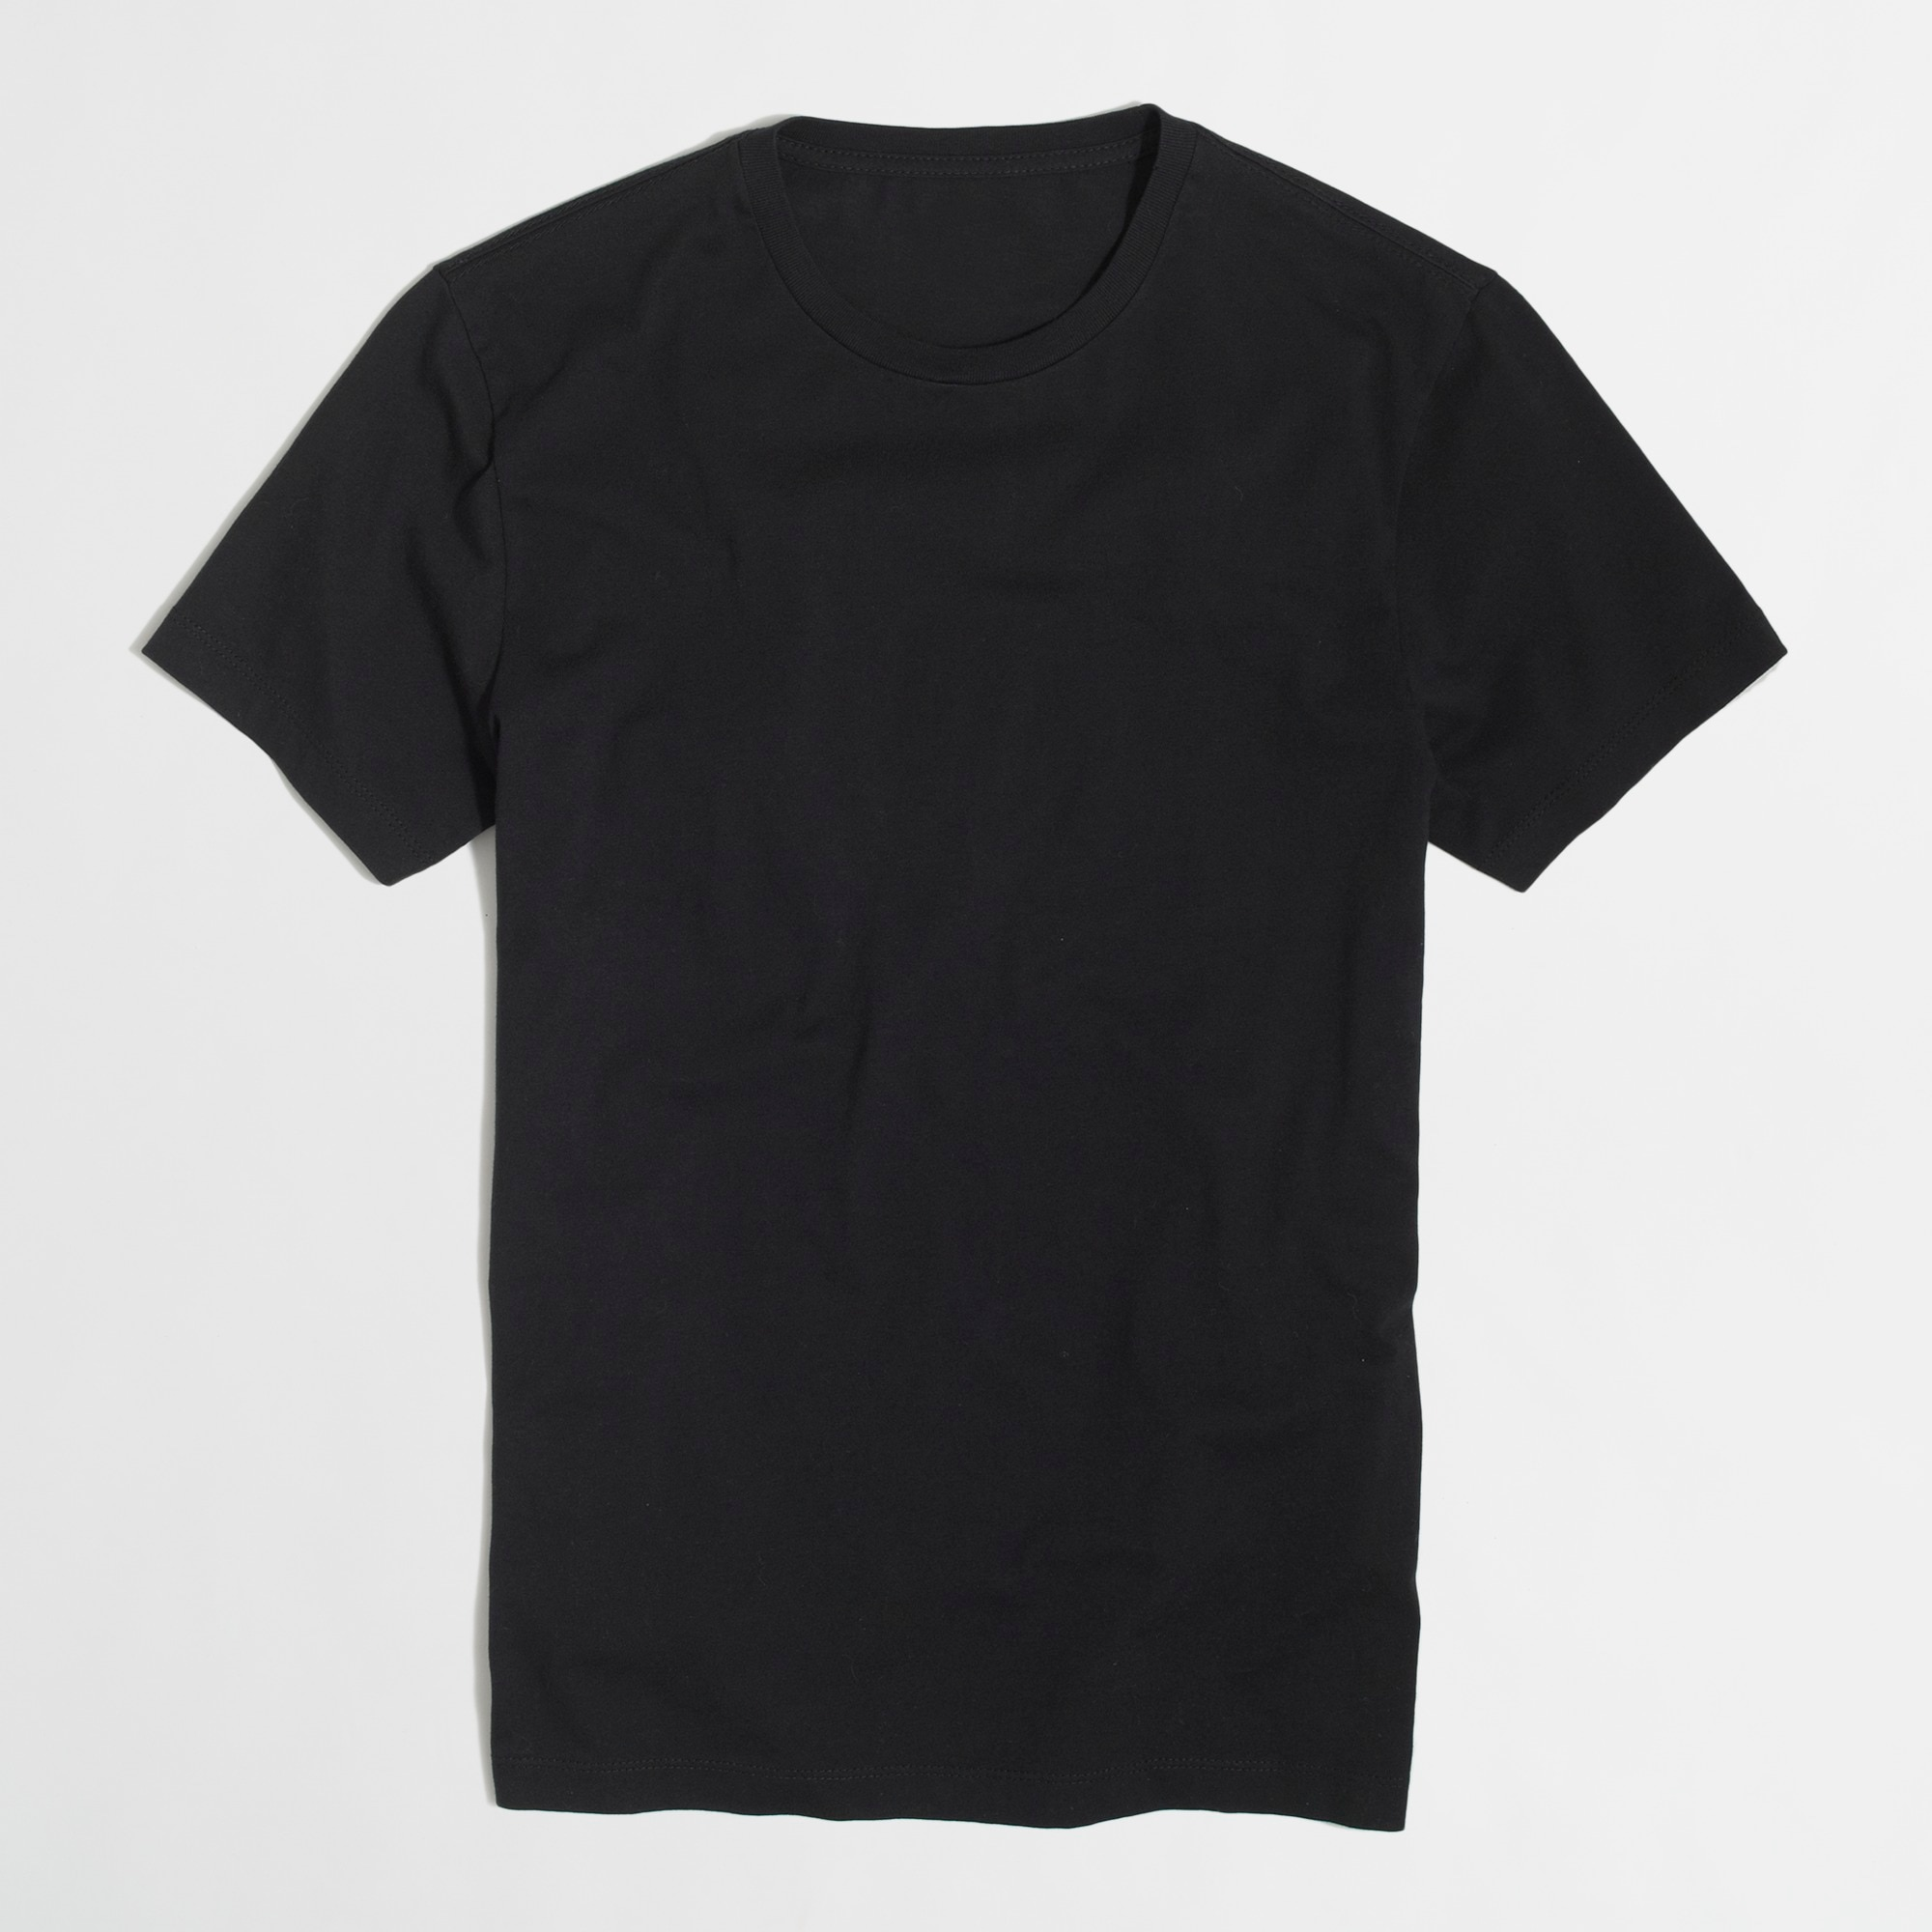 J.Crew Mercantile Broken-in T-shirt factorymen t-shirts & henleys c